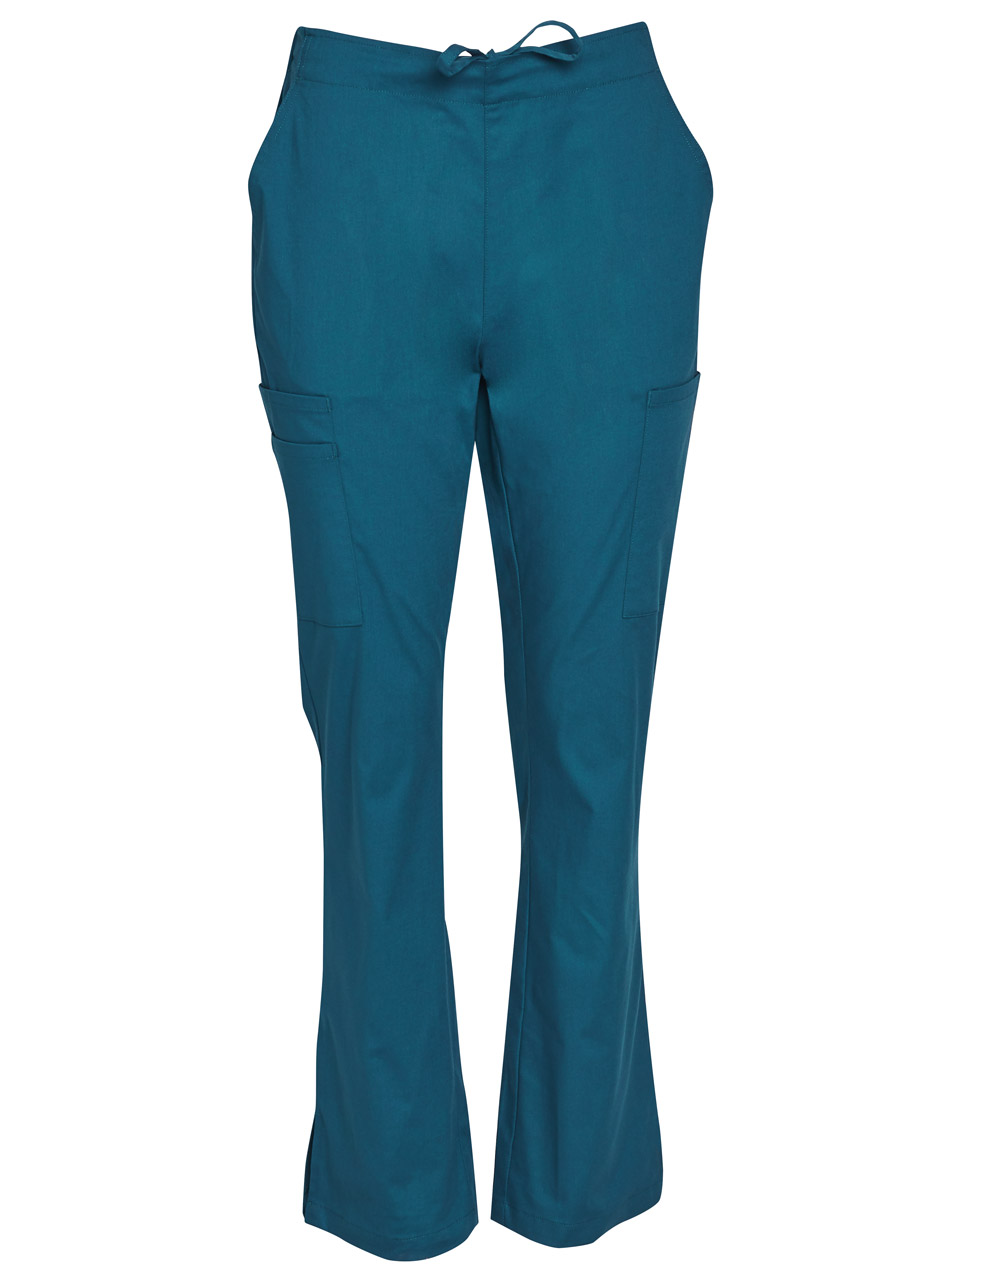 Get Teal Ladies Semi-Elastic Waist Tie Solid Colour Scrub Pants in Australia